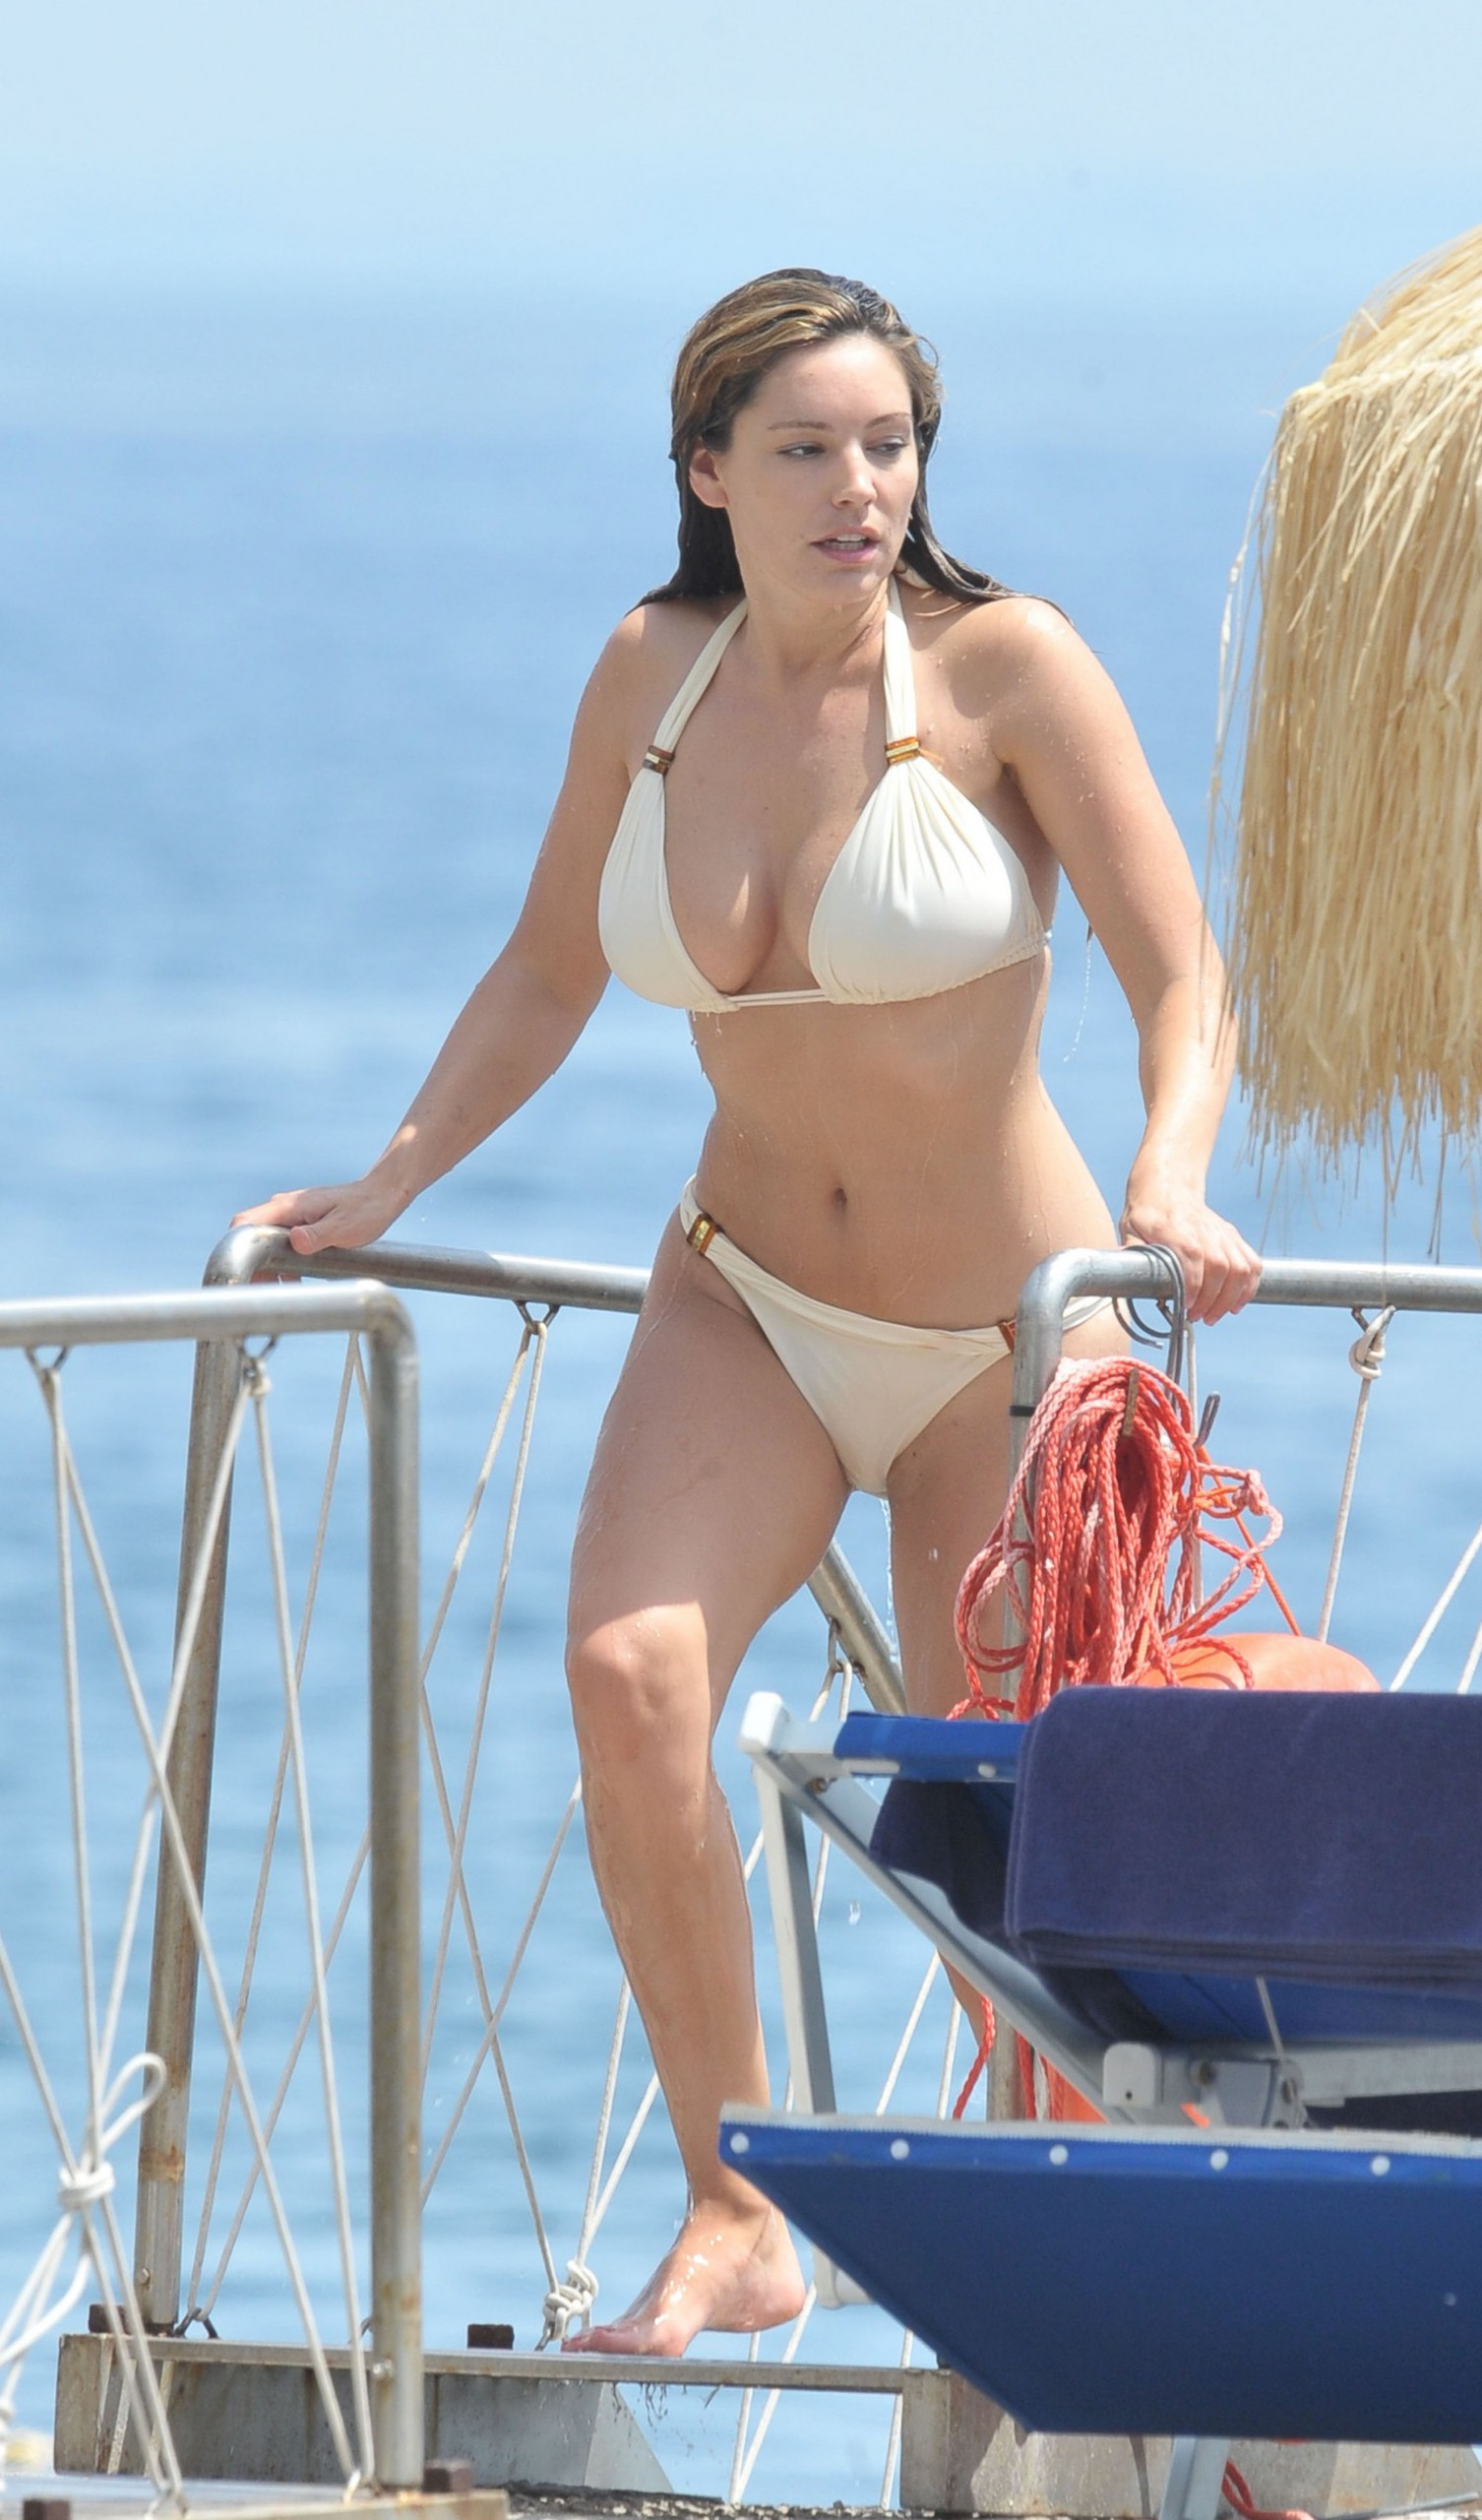 Consider, that Kelly brook nude bikini have not